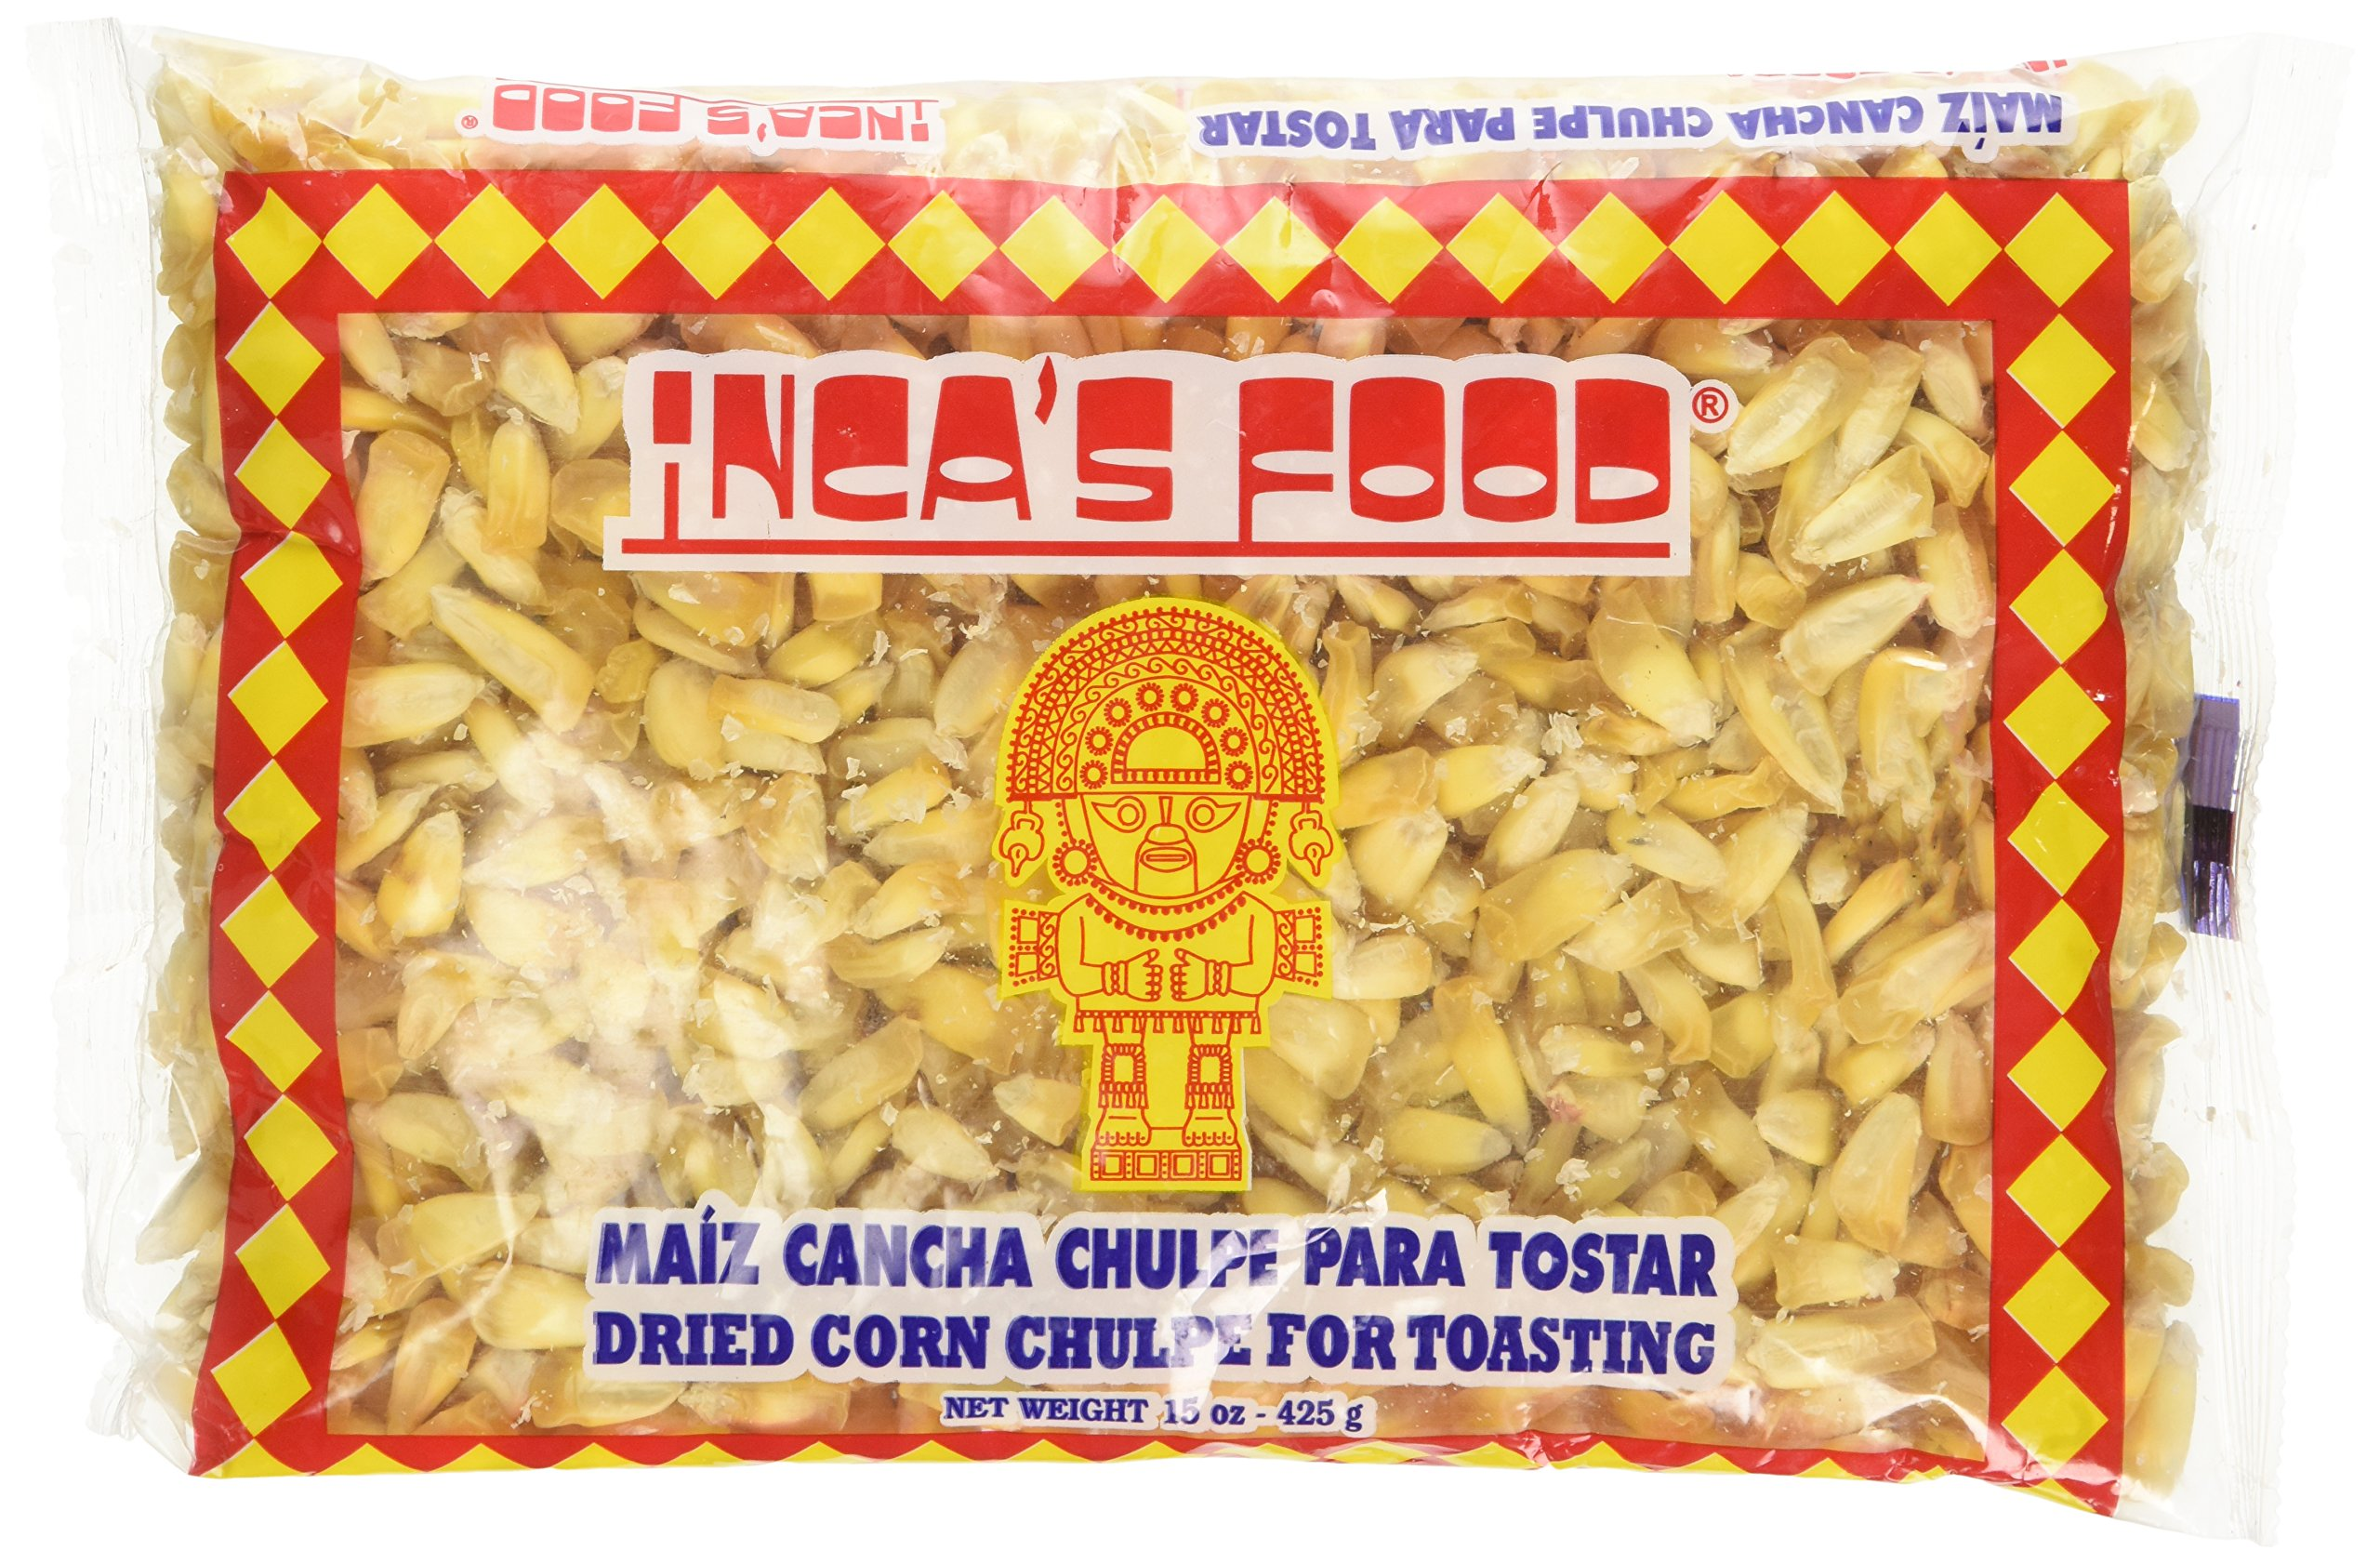 Incas Food Maiz Cancha Chulpe Para Tostar- Dried Corn Chulpe for Toasting - Product of Peru 15oz